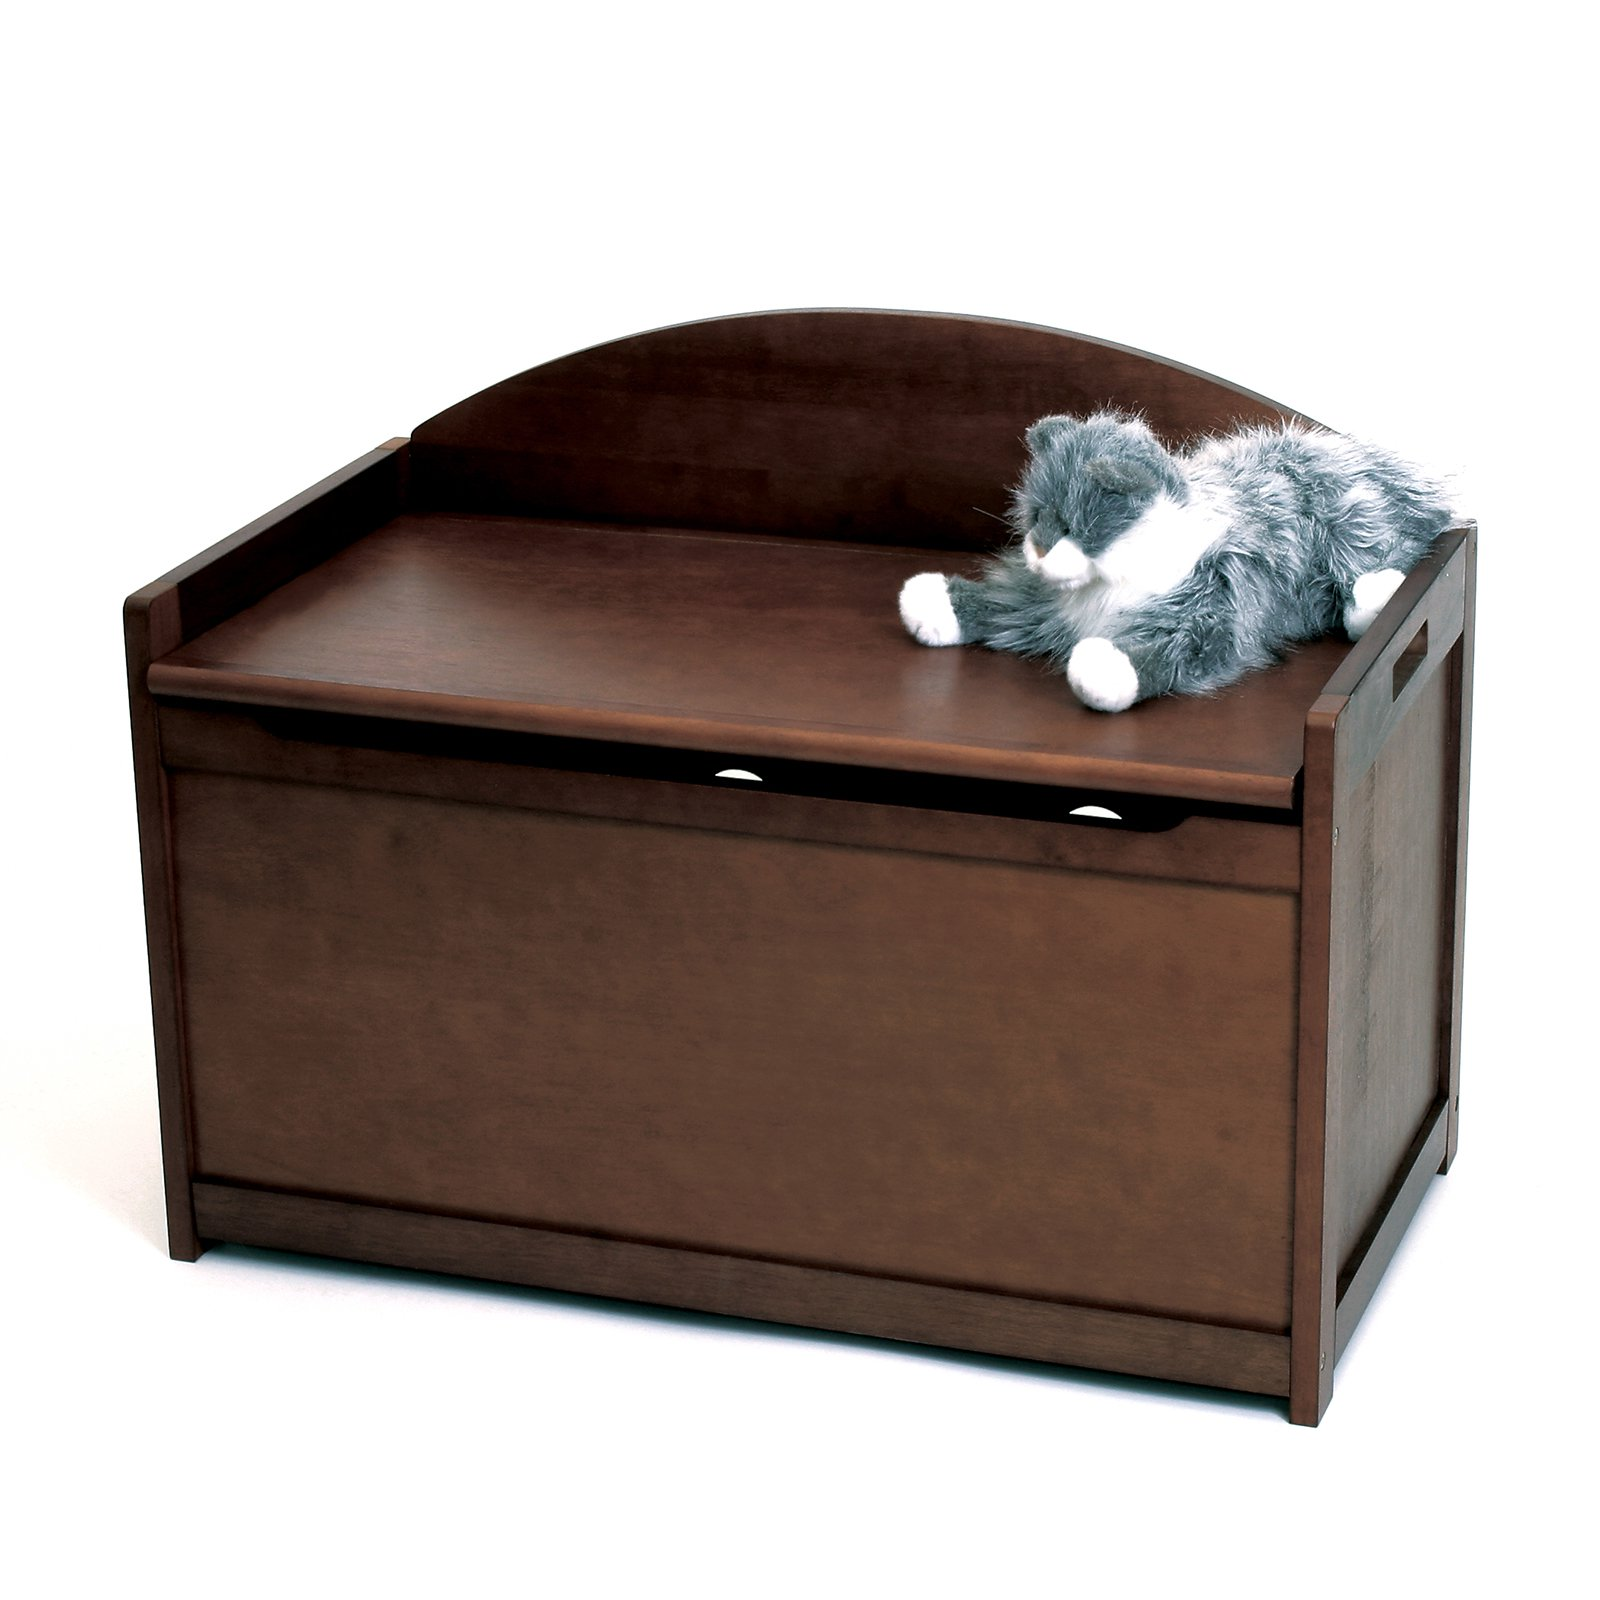 Beechwood Toy Chest by Lipper by Lipper International